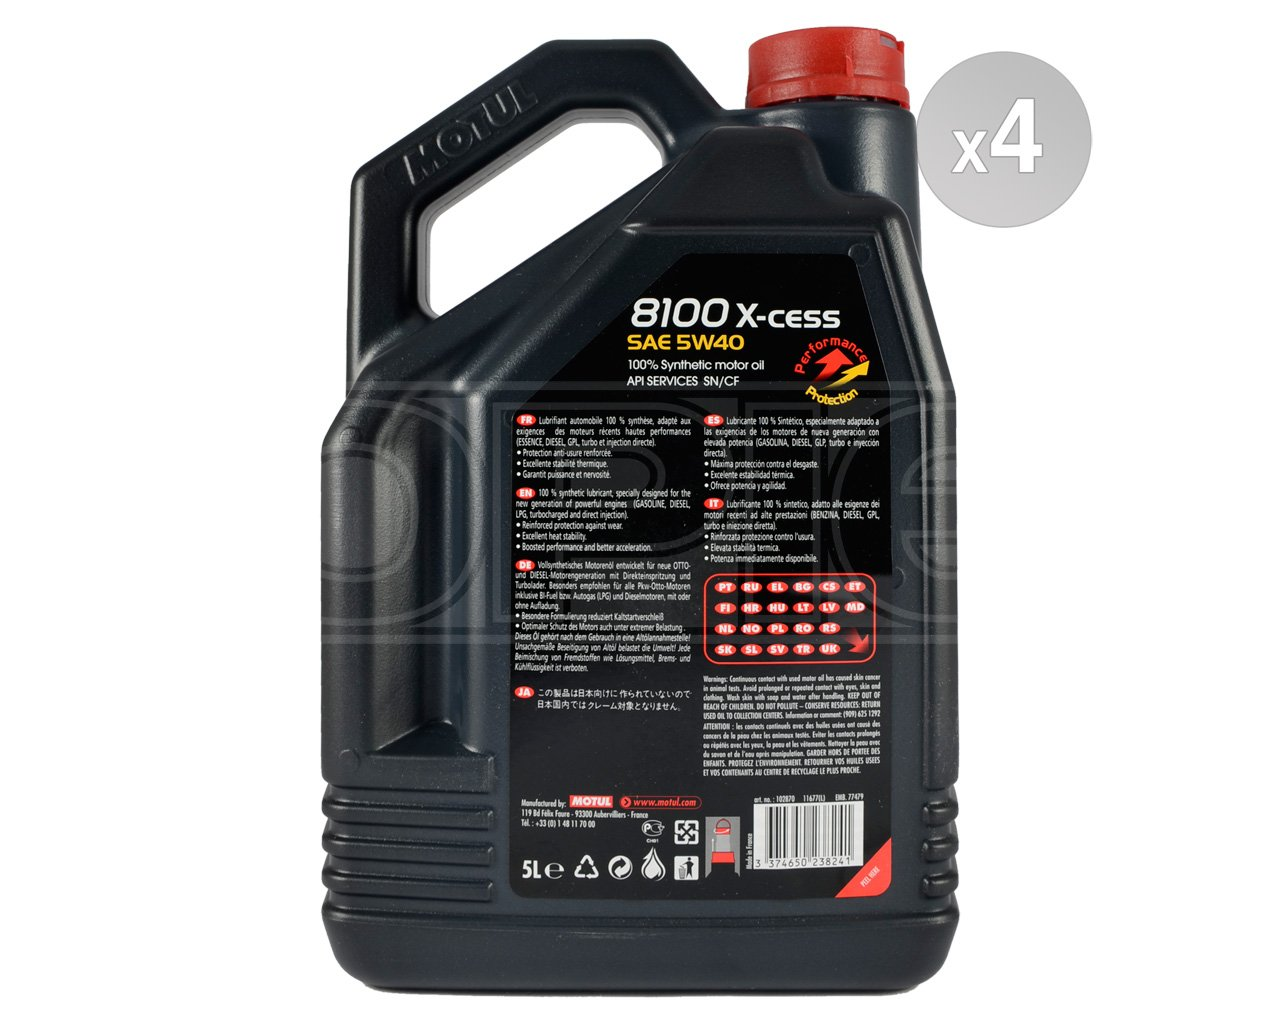 Amazon.com: Motul 102870-4 8100 X-Cess 5w40 Oil Case/4-5 Liters: Automotive